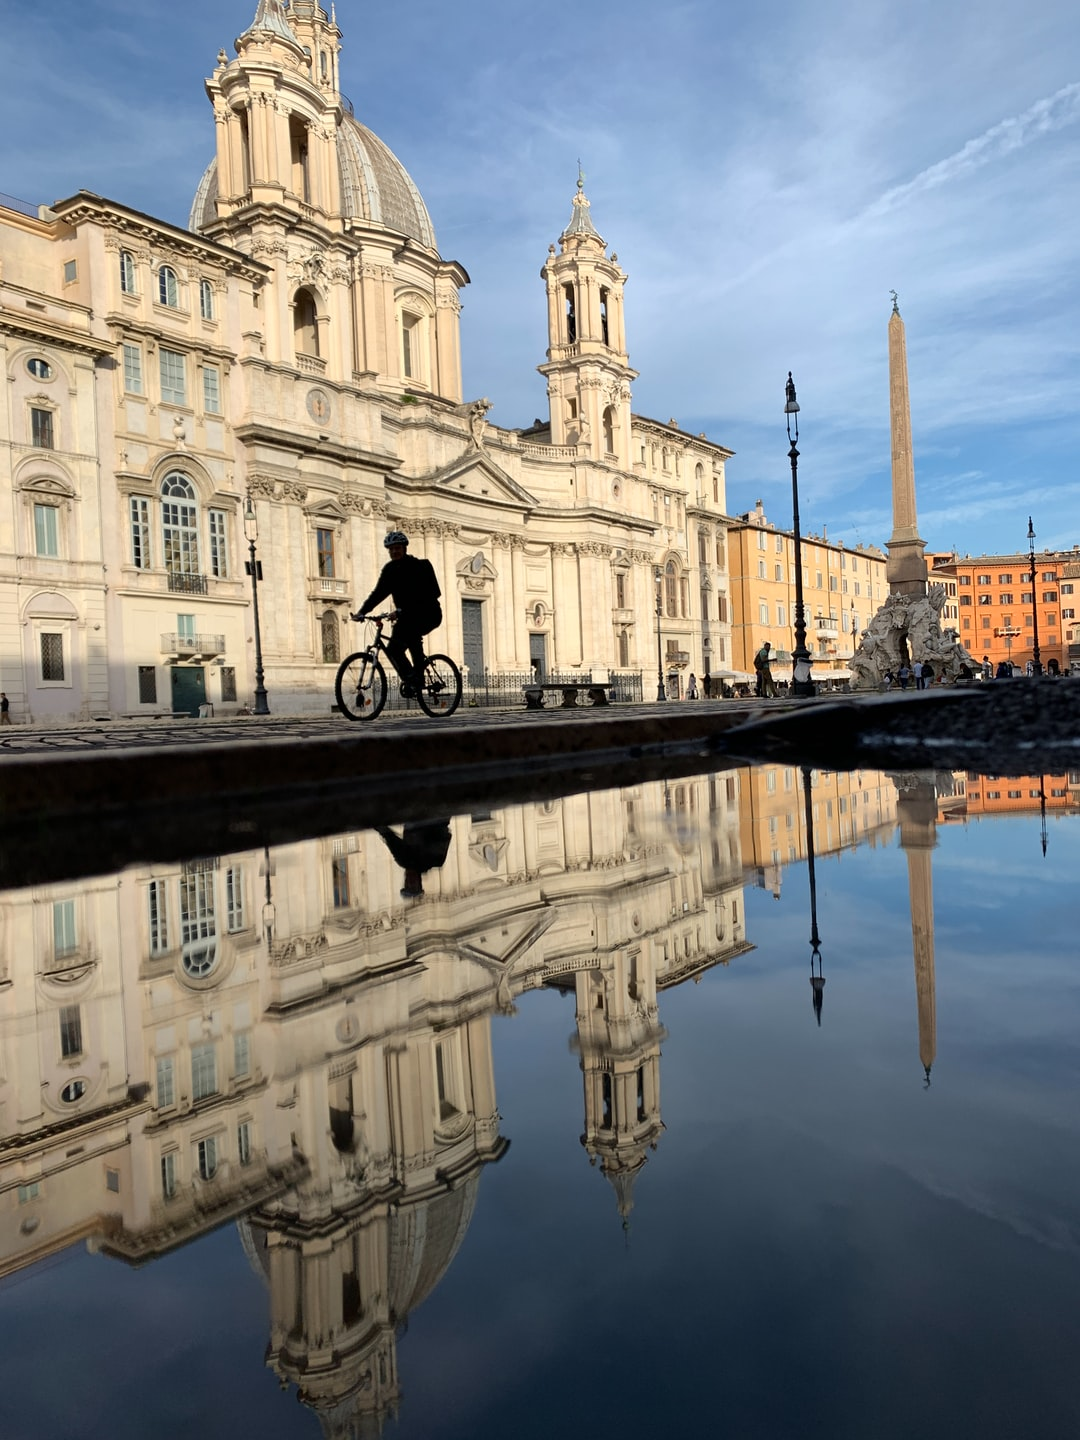 Piazza Navona with Sant'Agnese as the main scene with a reflection from a puddle on the ground.  There is a bike / bicyclist in the middle.  AMAZING! Sant'Agnese in Agone is a 17th-century Baroque church in Rome, Italy. It faces onto the Piazza Navona, one of the main urban spaces in the historic centre of the city and the site where the Early Christian Saint Agnes was martyred in the ancient Stadium of Domitian. Construction began in 1652 under the architects Girolamo Rainaldi and his son Carlo Rainaldi. After numerous quarrels, the other main architect involved was Francesco Borromini.[1]